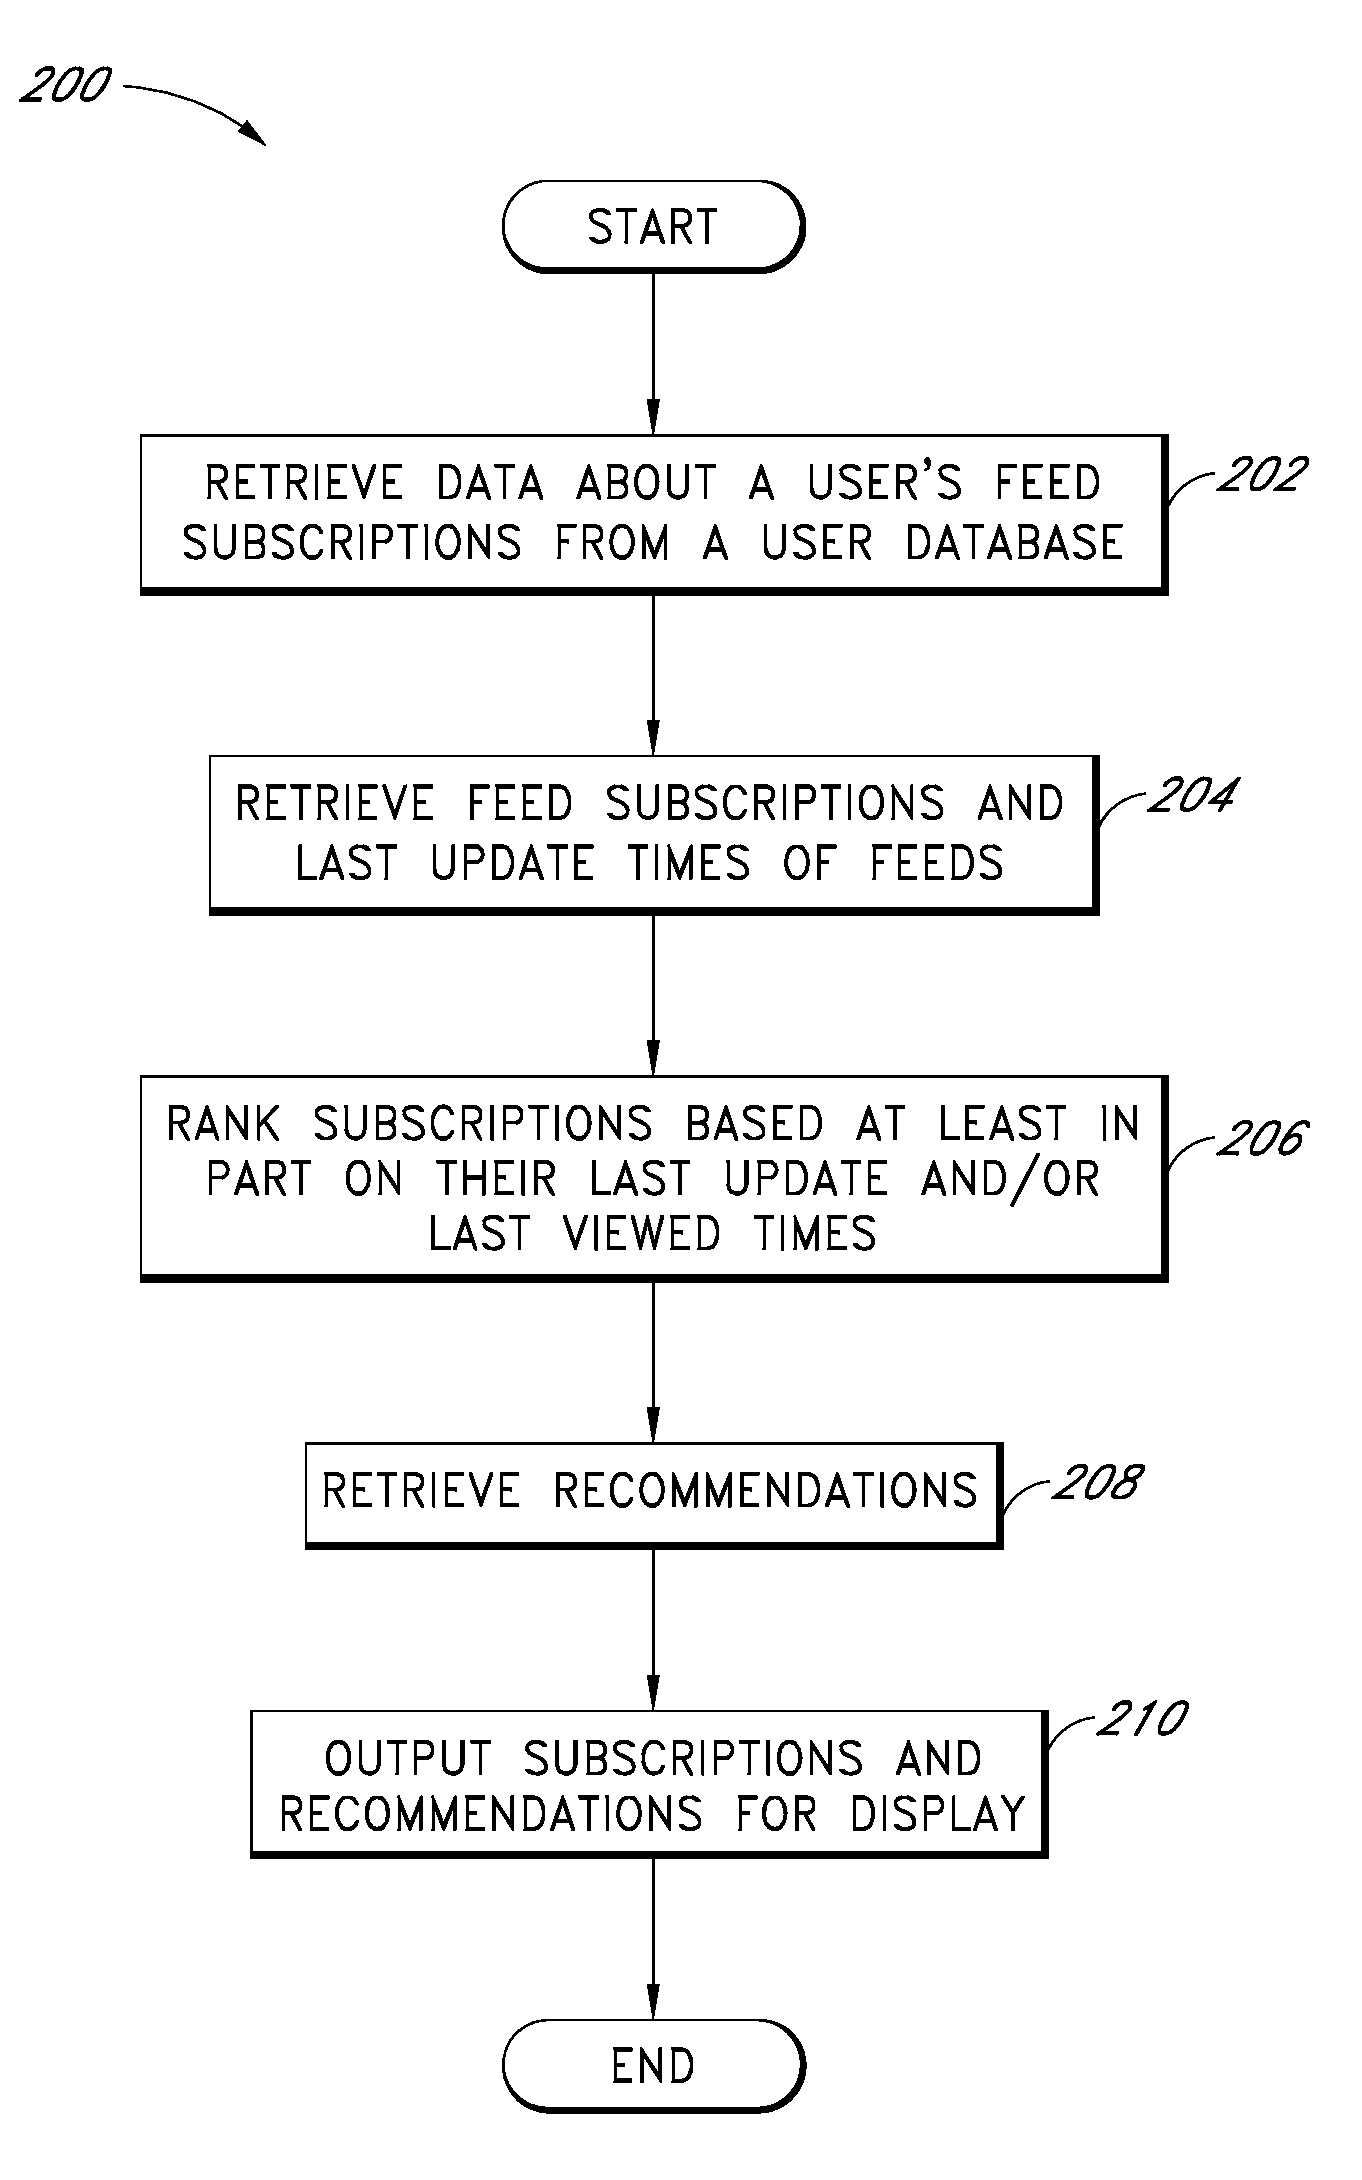 System for facilitating discovery and management of feeds  - US-7984056-B1